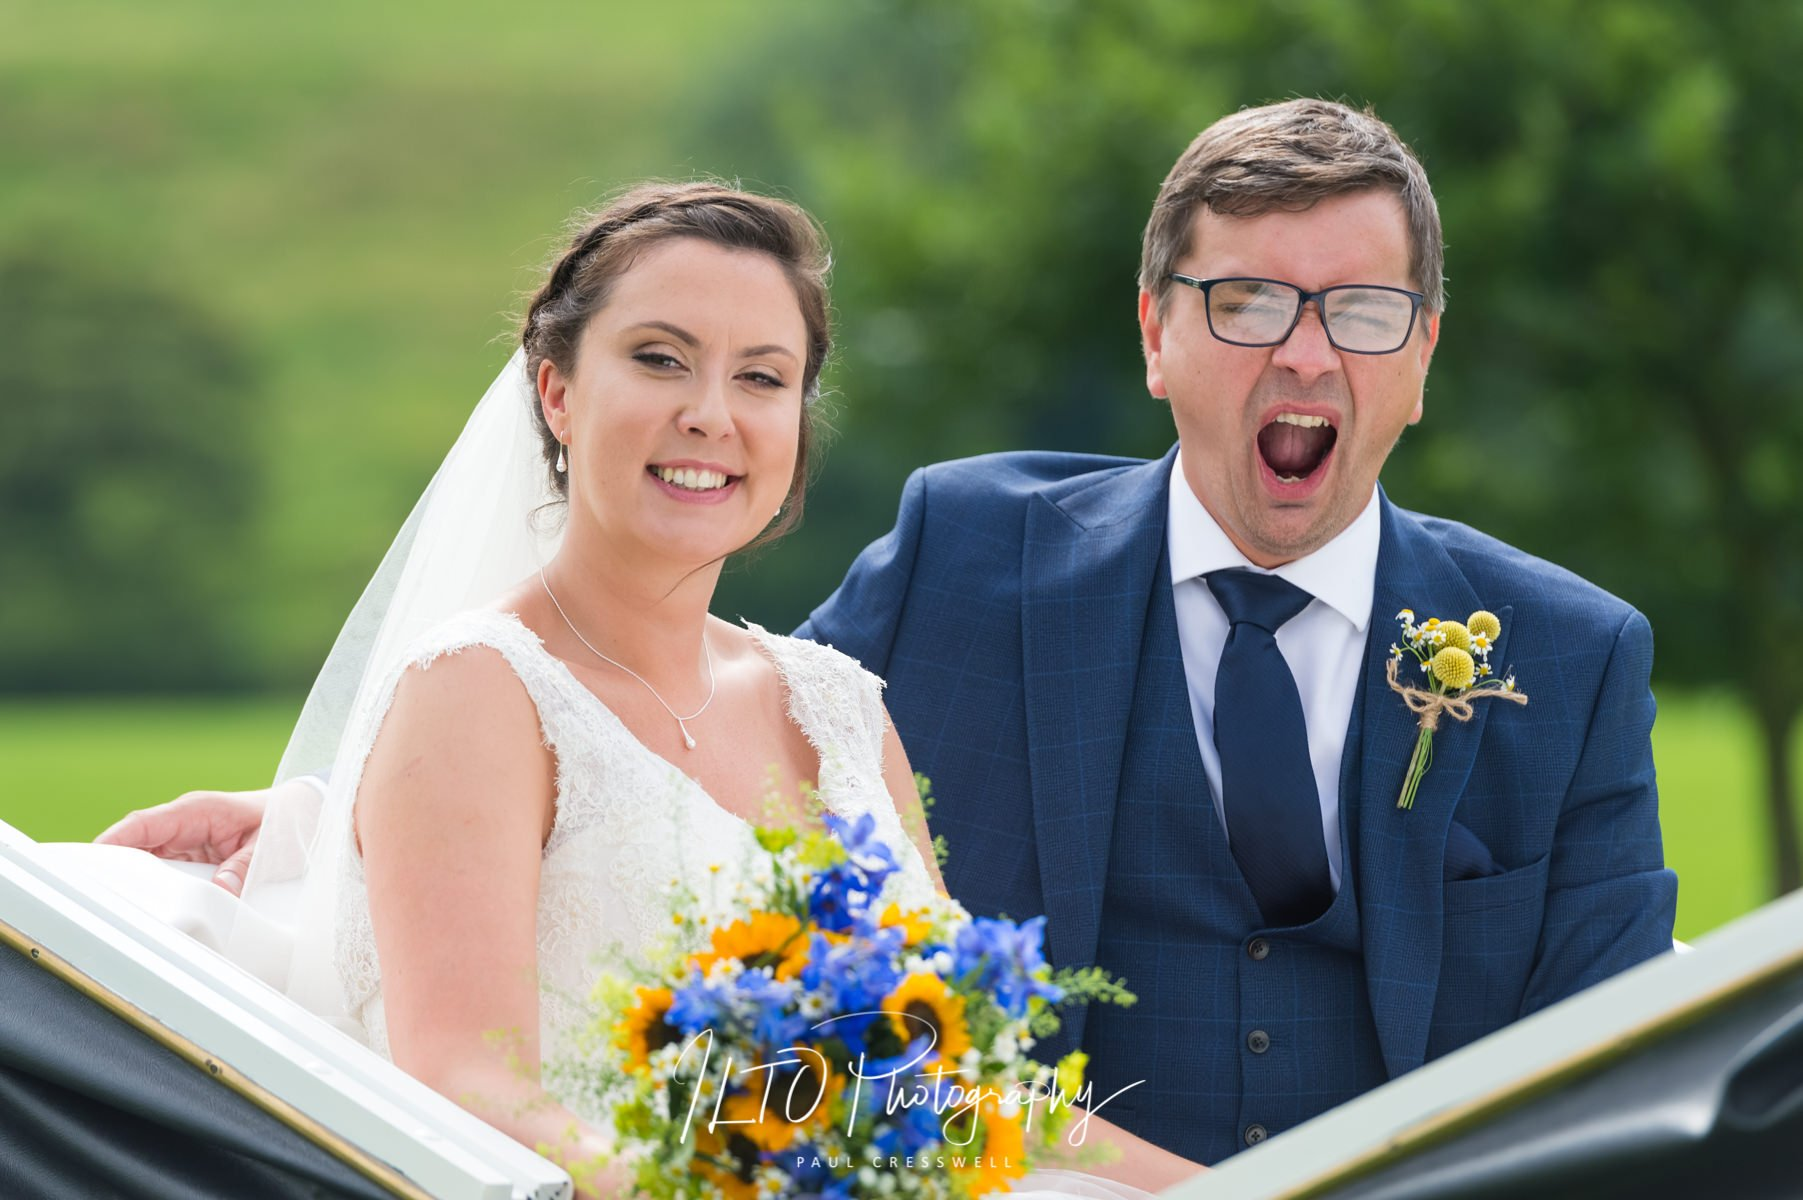 Funny natural wedding photography, wedding portfolio, west yorkshire wedding photographer